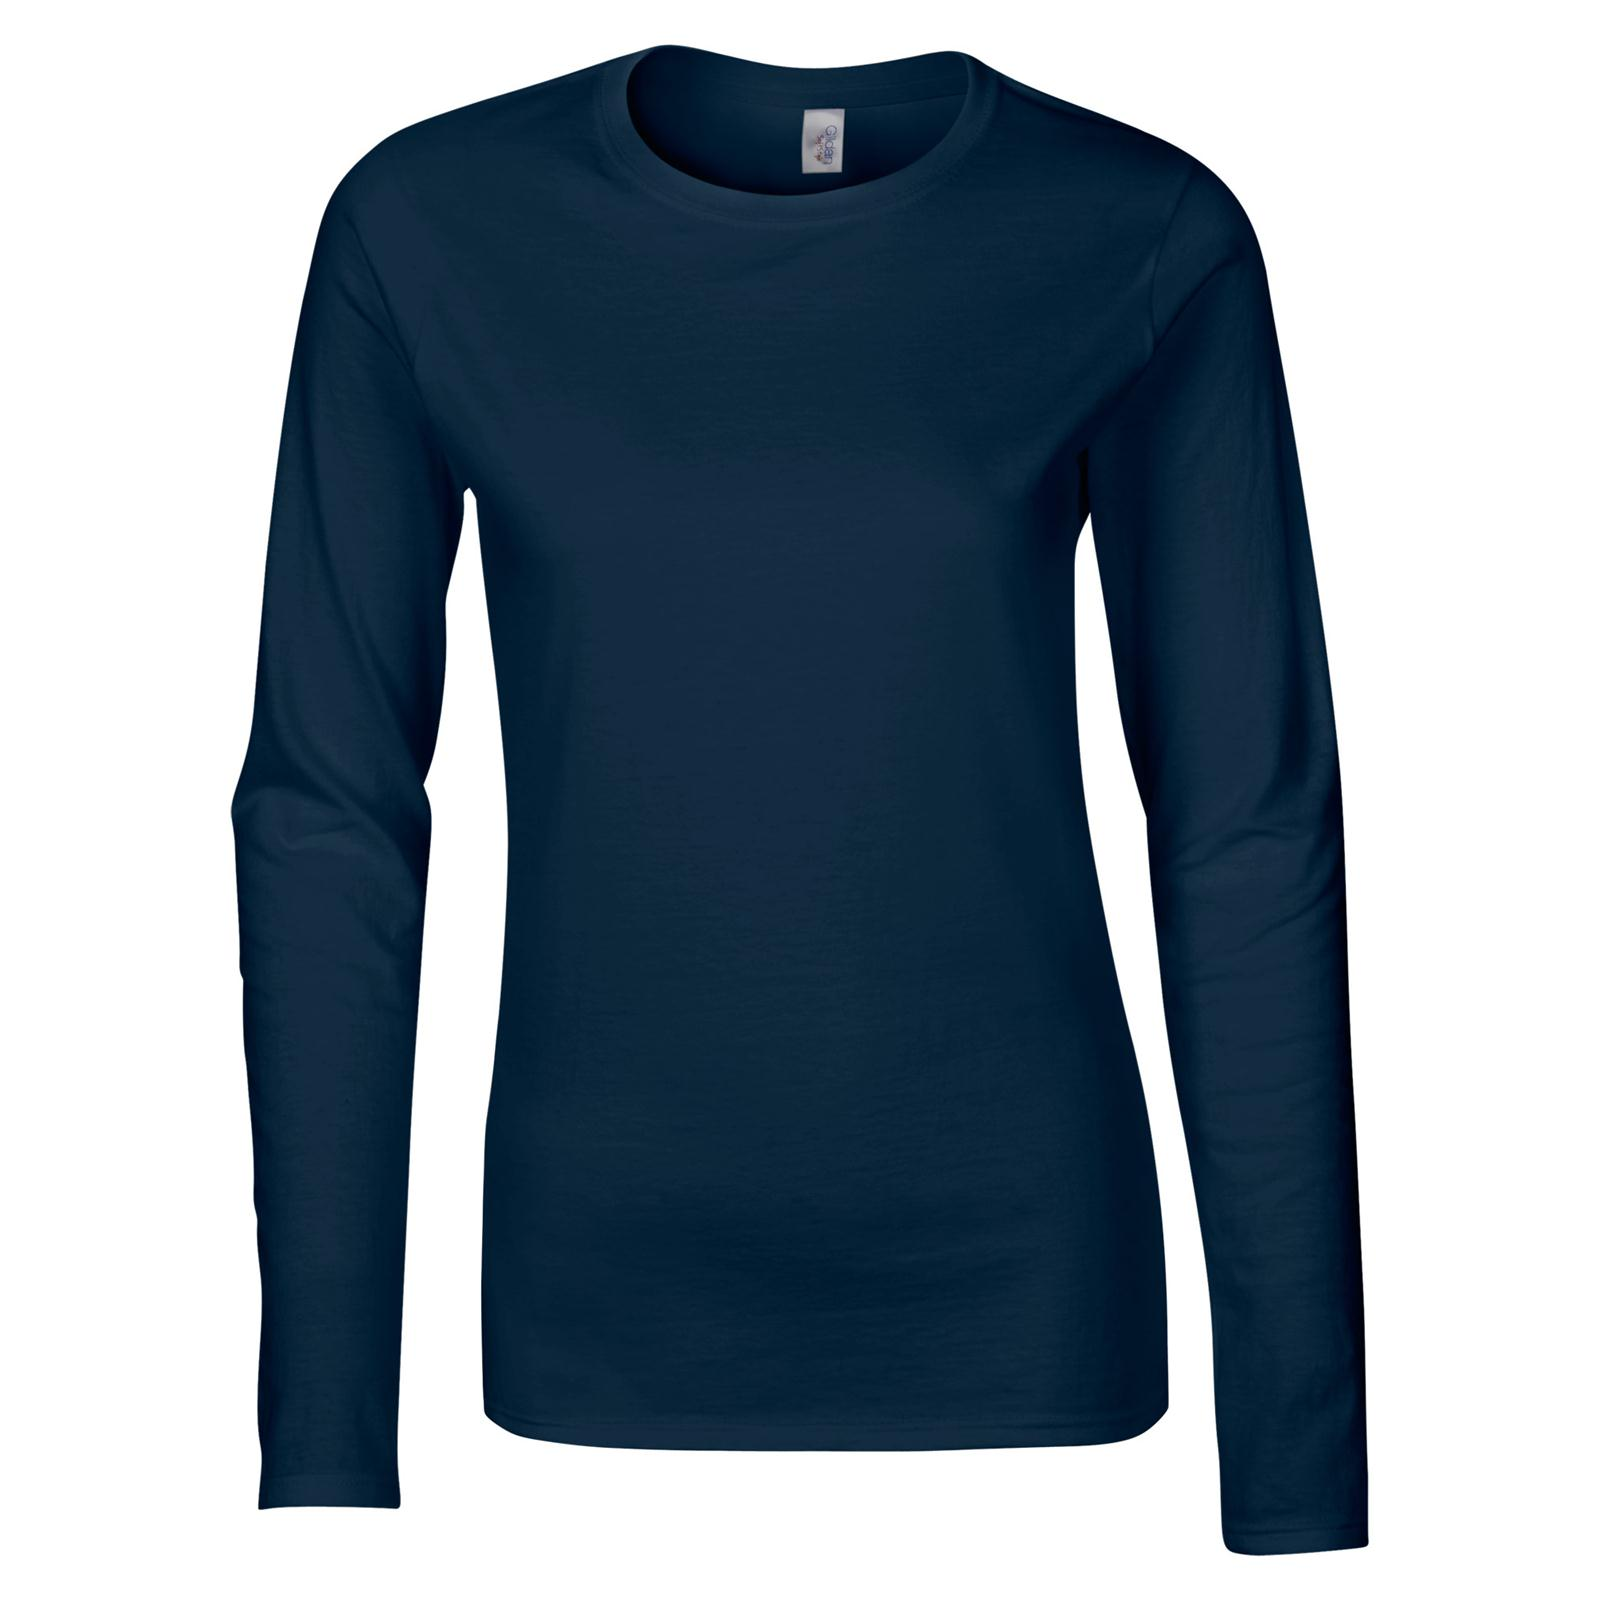 92de60d02452d ... Ladies Soft Style Cotton Long Sleeve T Shirt in 8 Colours S-xl Navy  Double Extra Large. About this product. Picture 1 of 6  Picture 2 of 6   Picture 3 of ...